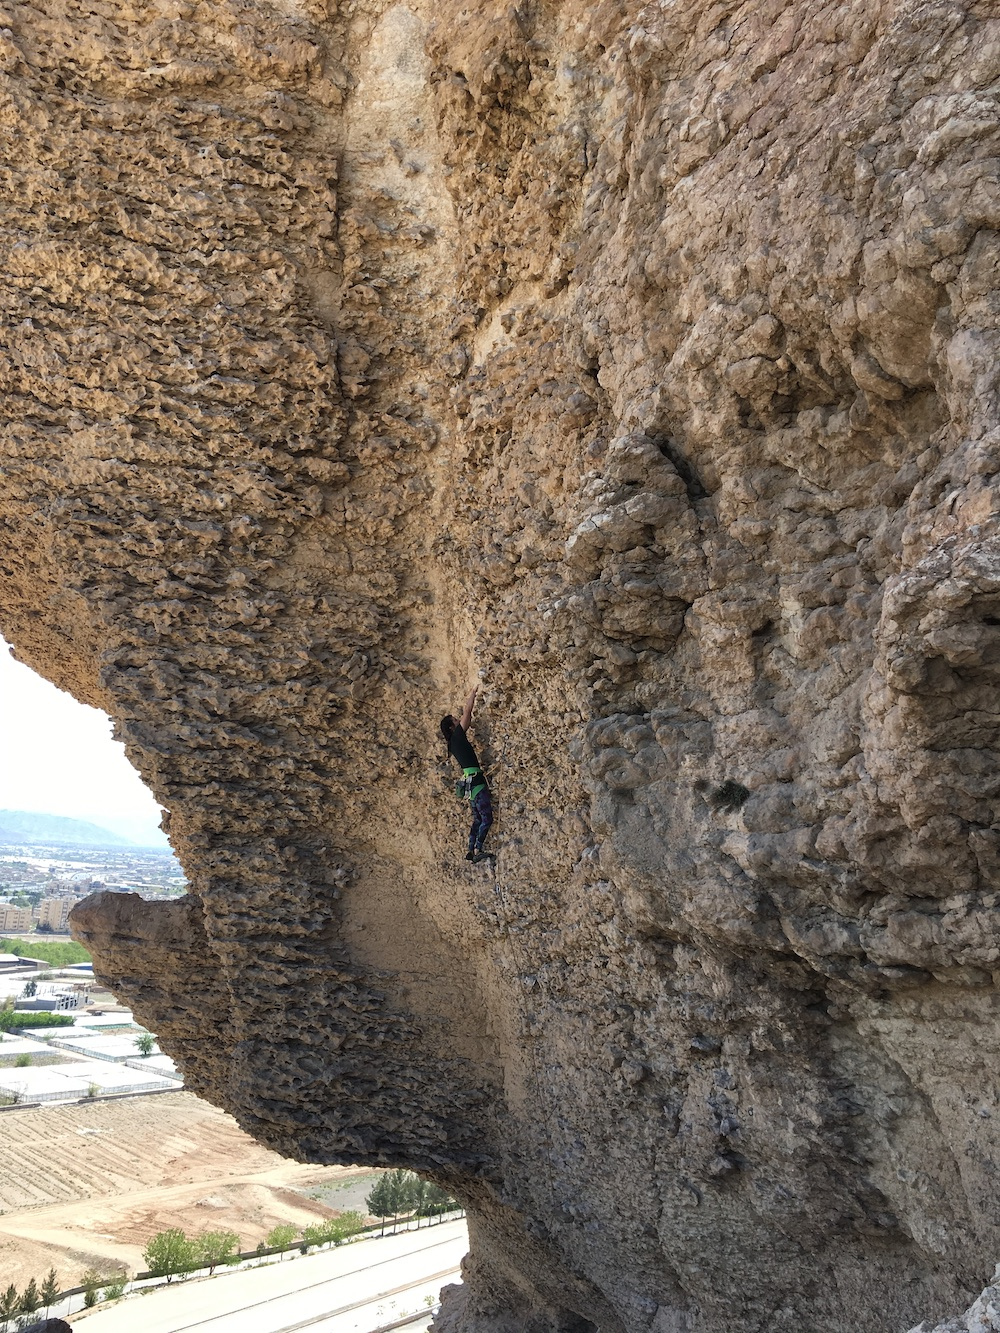 photo of the author climbing up a sheer rock face with a city in the background